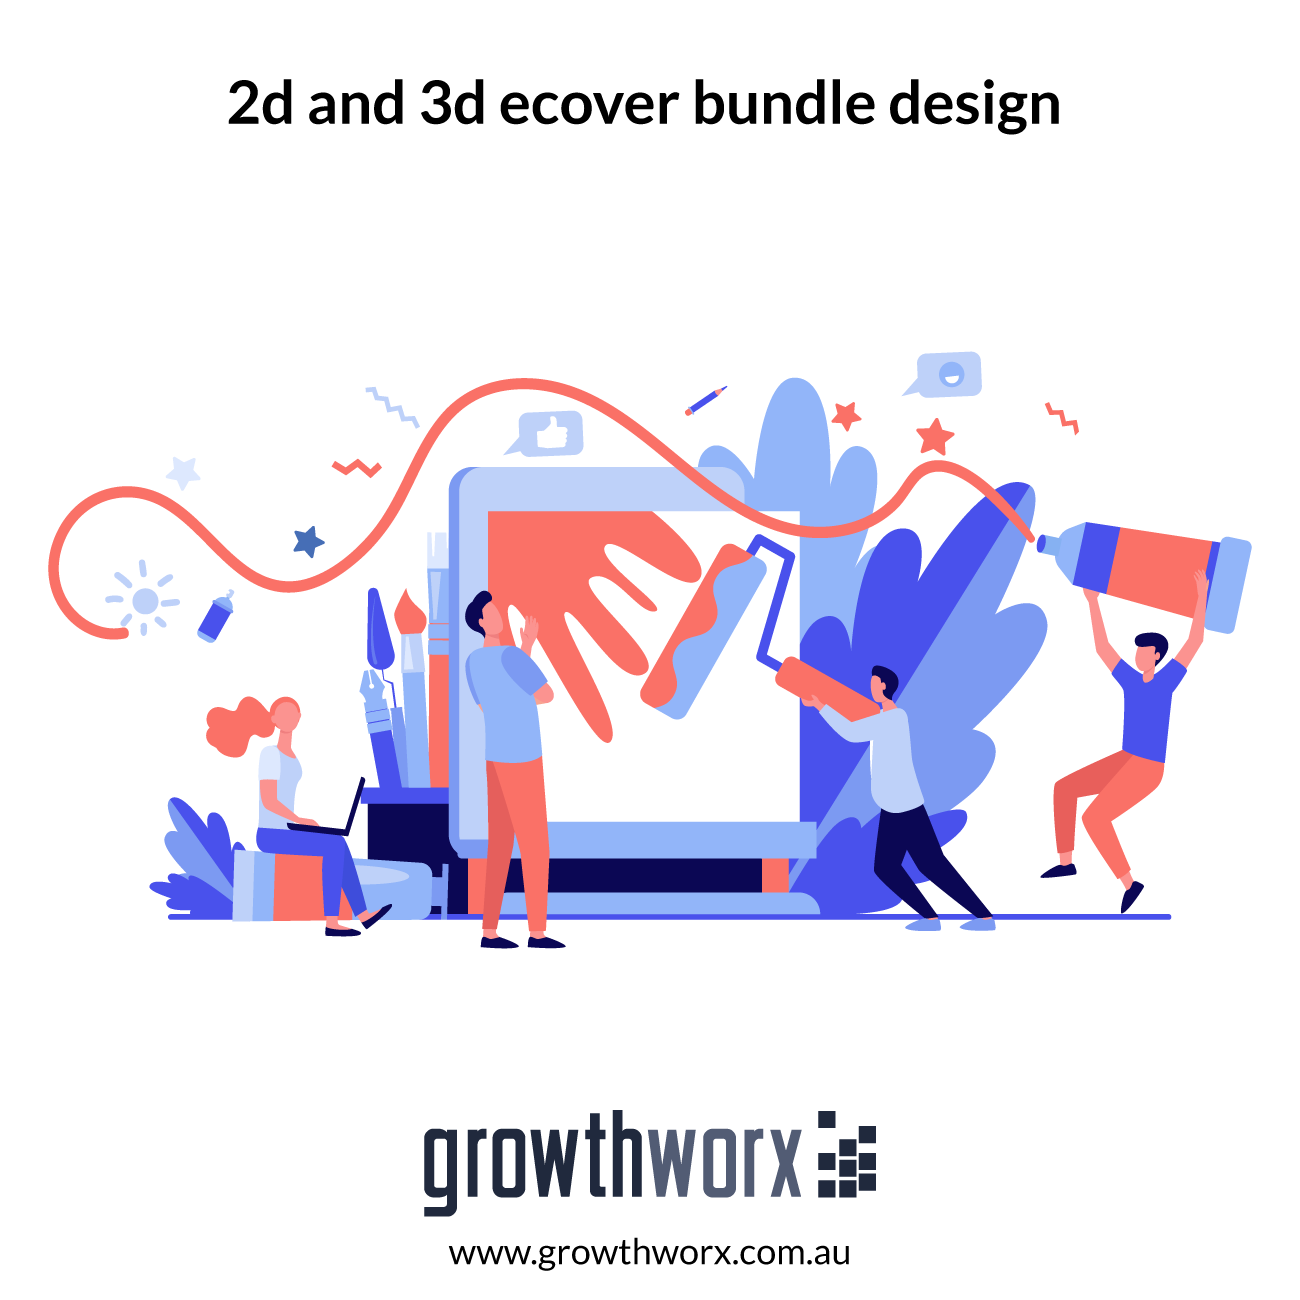 We will design 2d and 3d ecover bundle of ebook, box,dvd,cds,devices 1